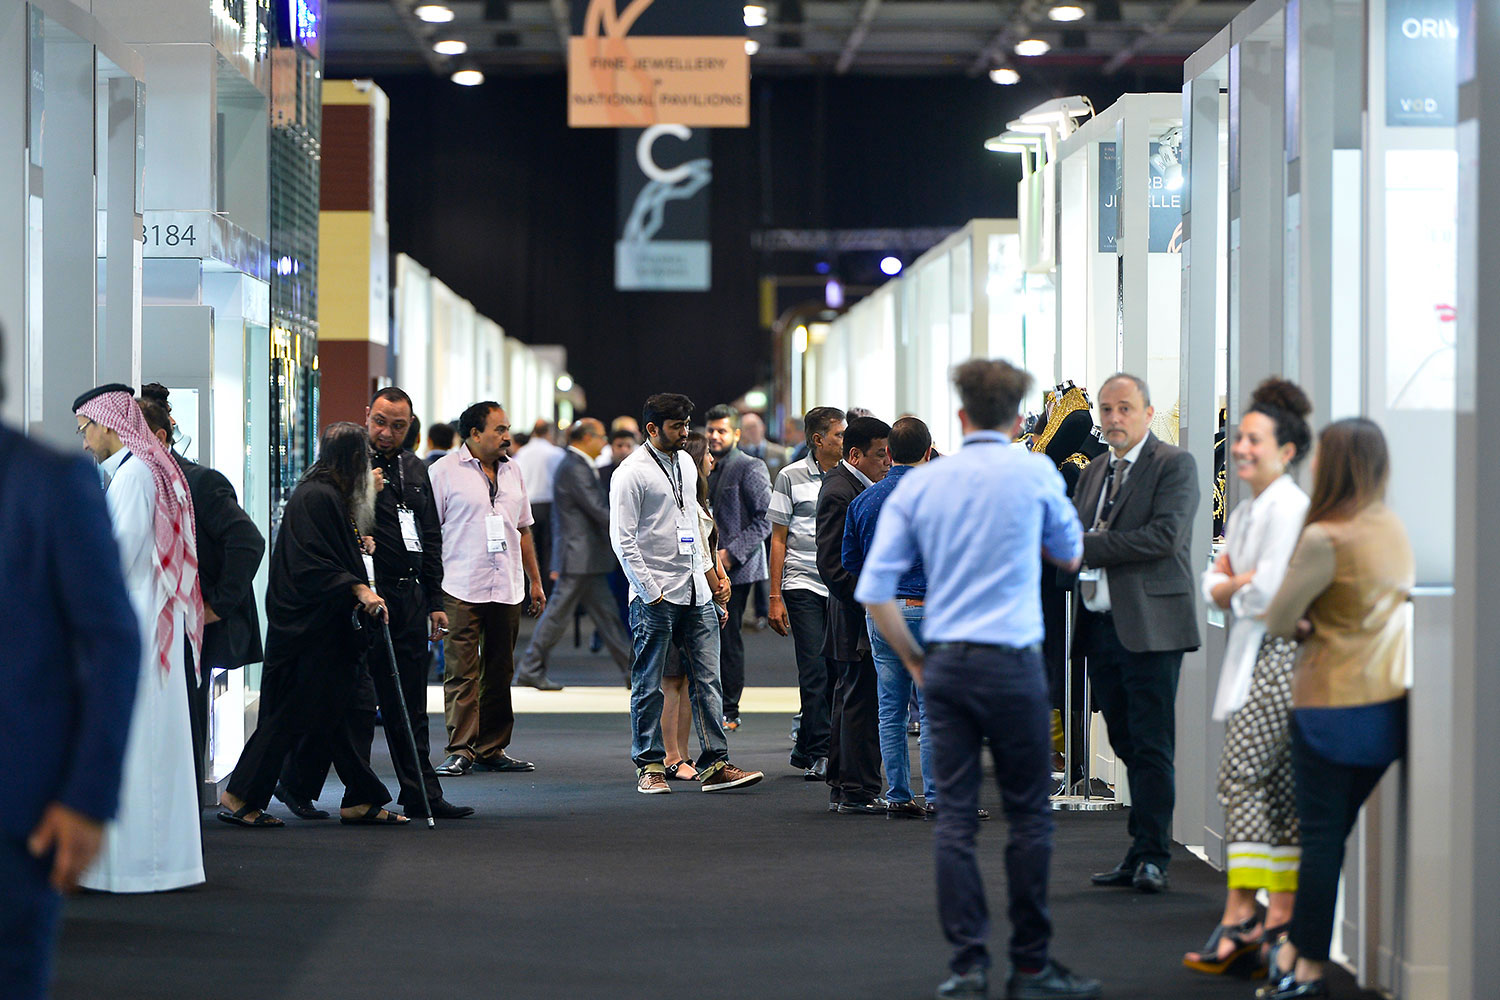 https://www.jewelleryshow.com/images/highlights/highlights-2016-dubai/highlits-dubai-vod-2016-3.jpg